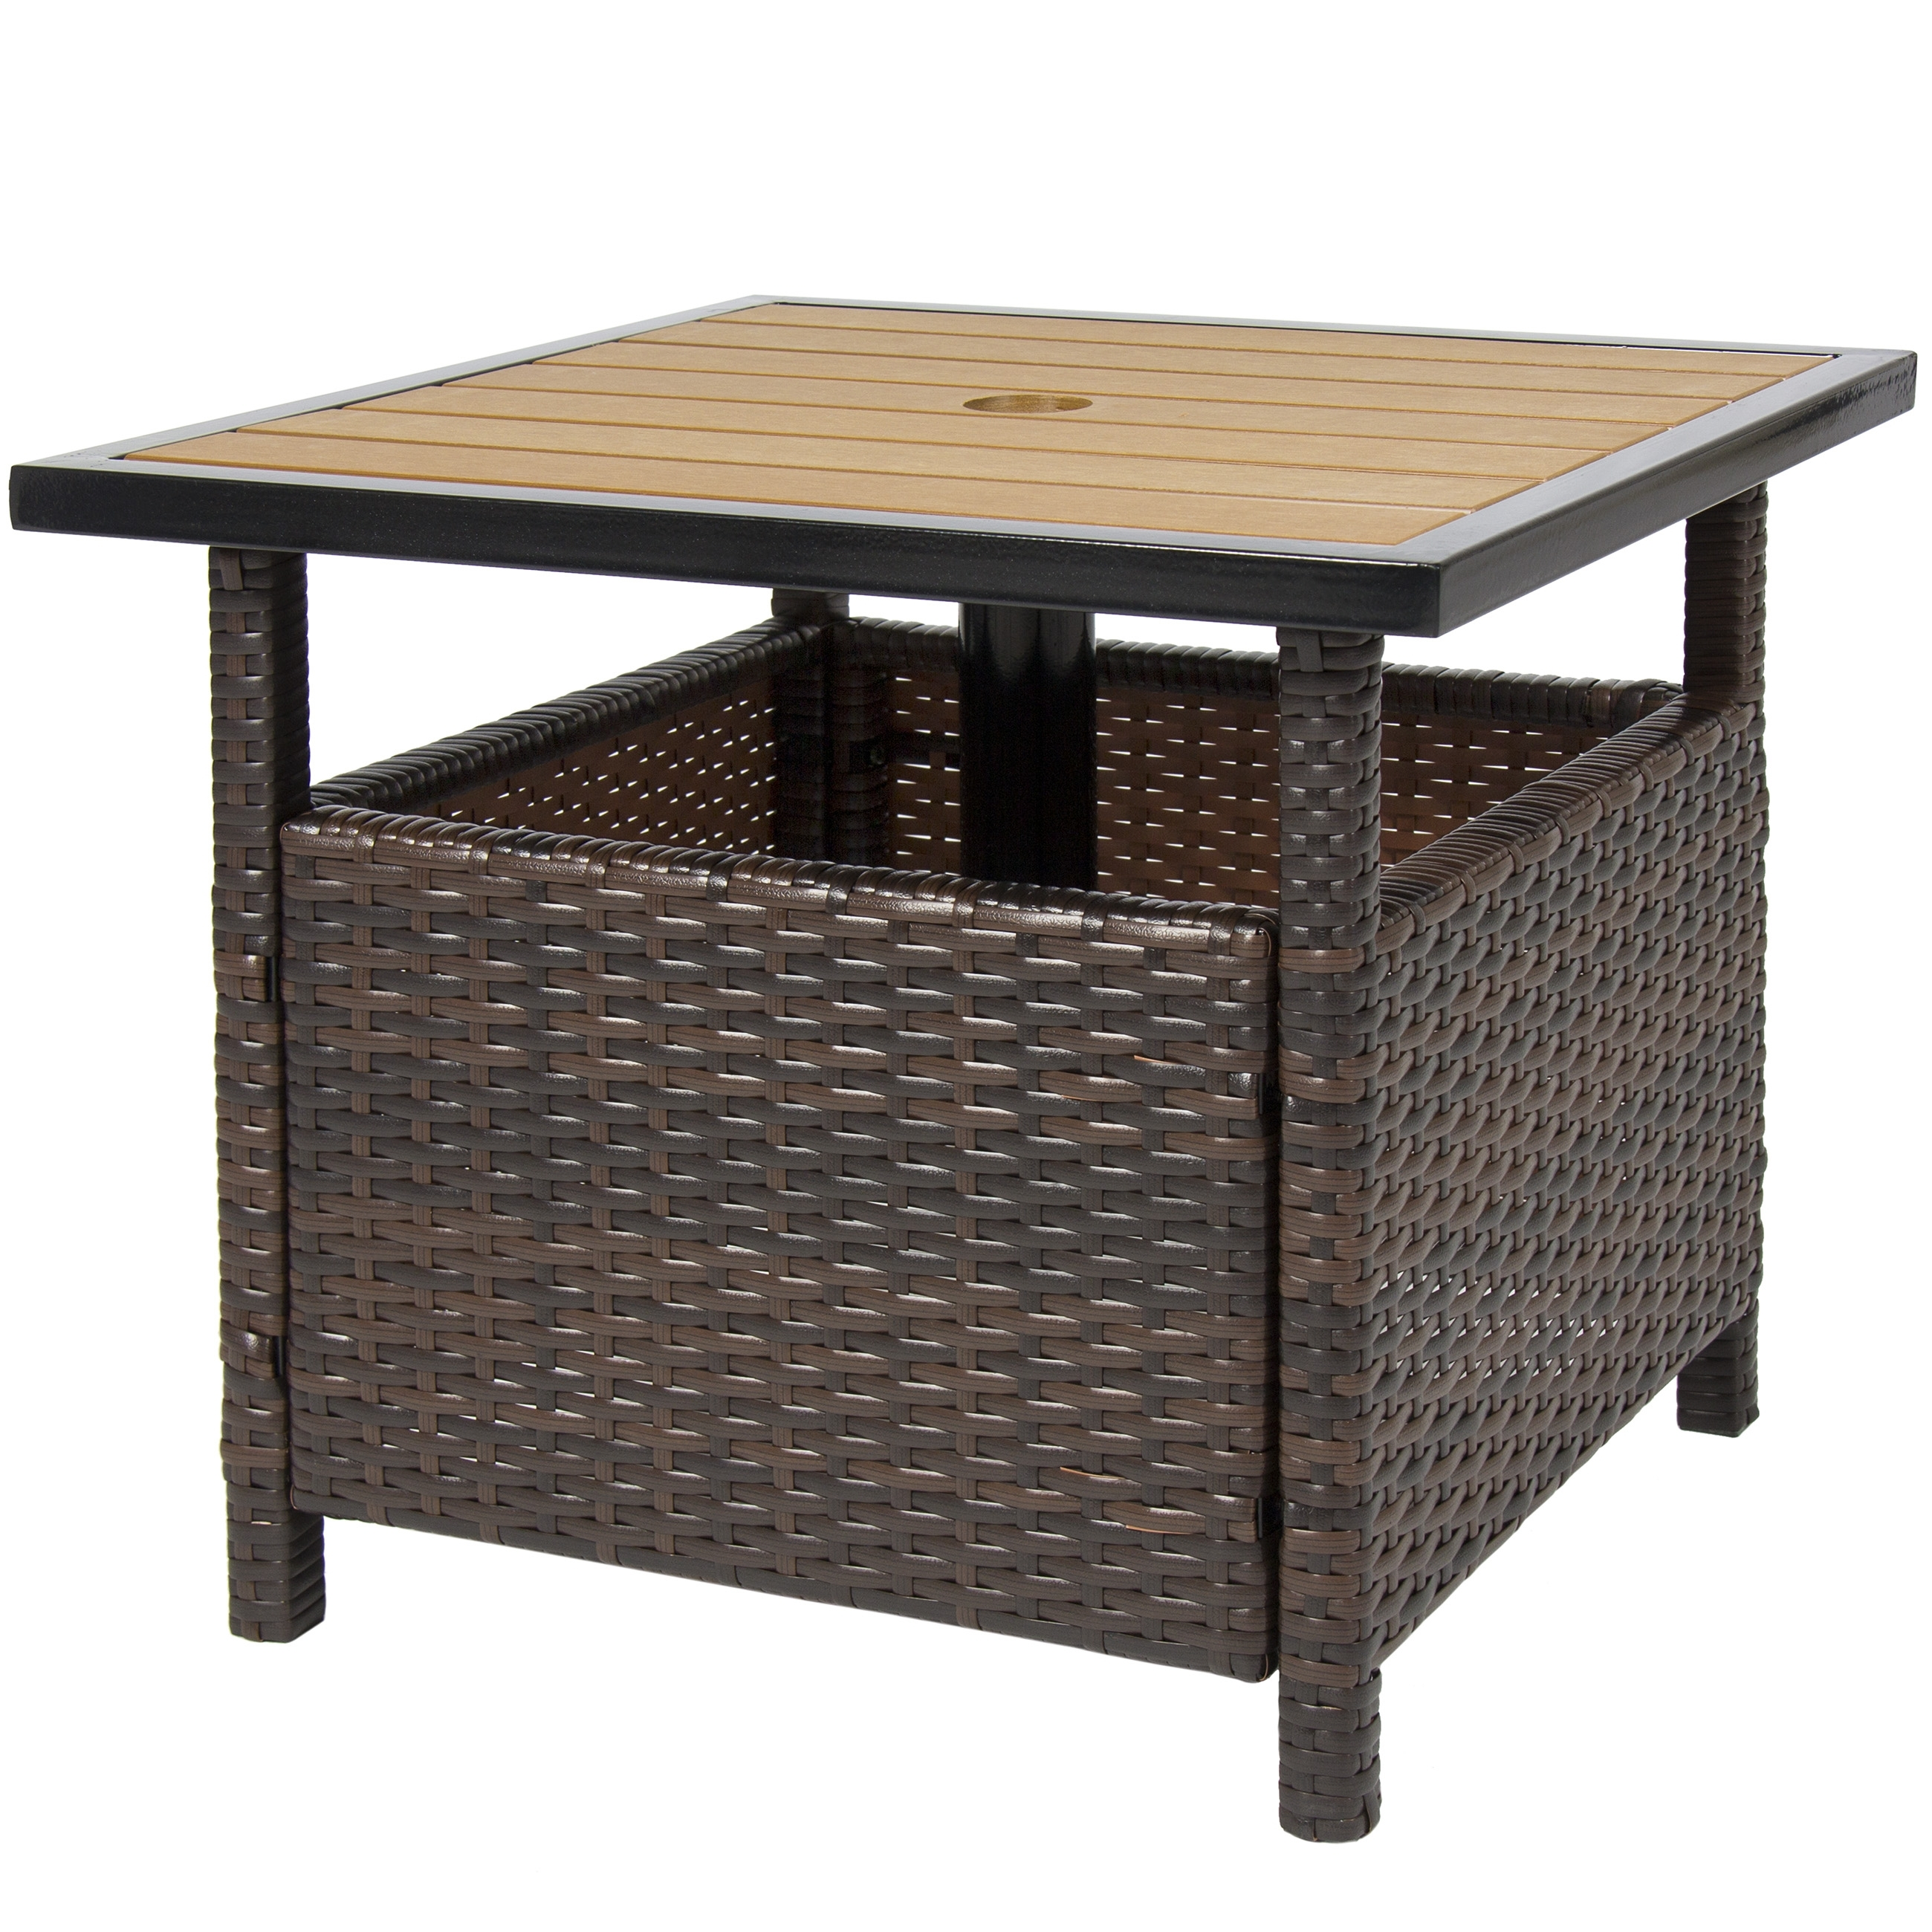 Most Recently Released Patio Umbrella Stand Side Tables Inside Best Choice Products Outdoor Furniture Wicker Rattan Patio Umbrella (View 4 of 20)